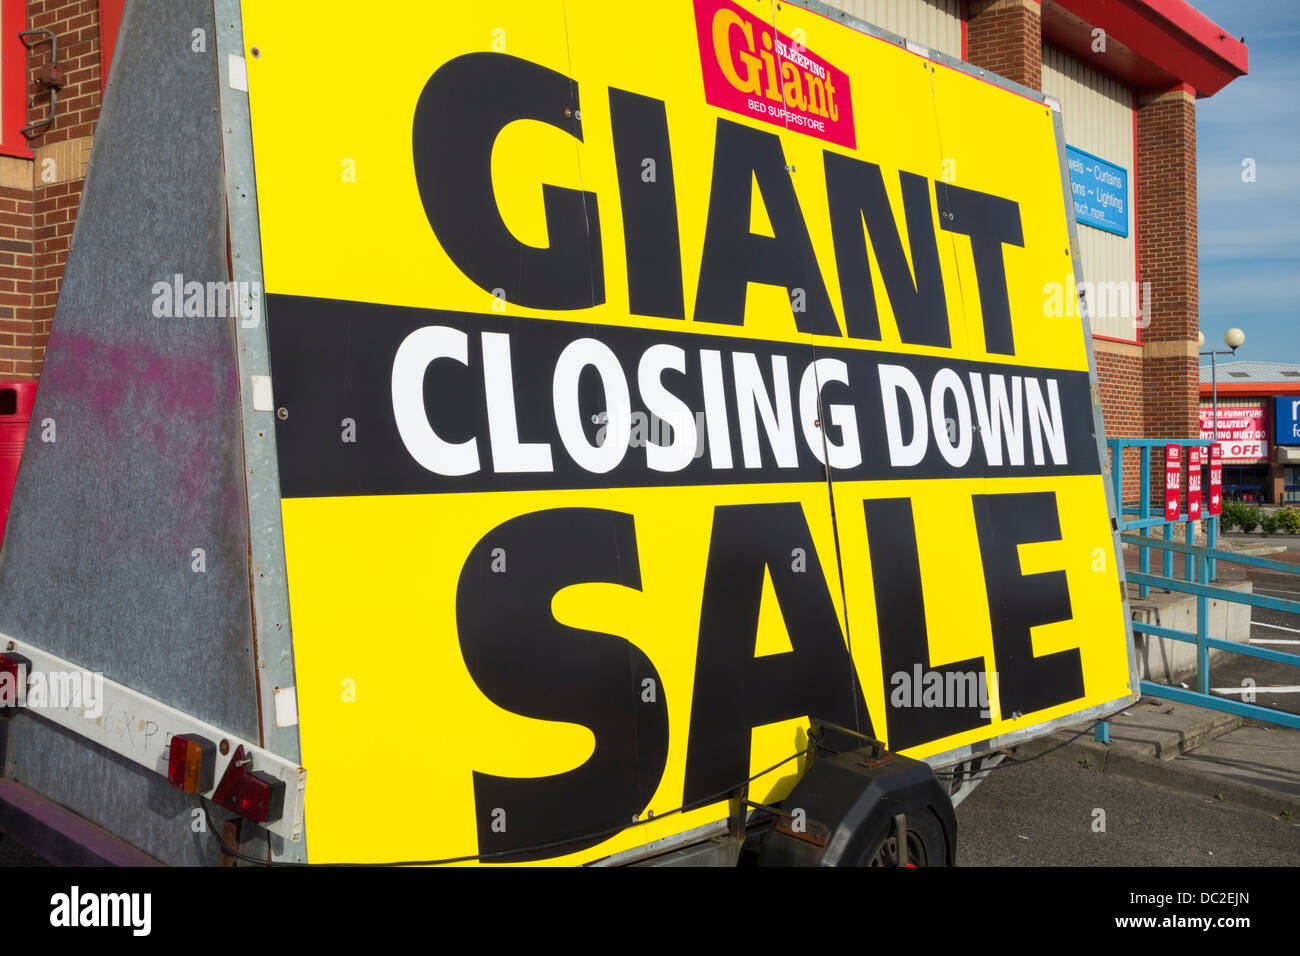 Giant closing down sale sign outside - Stock Image